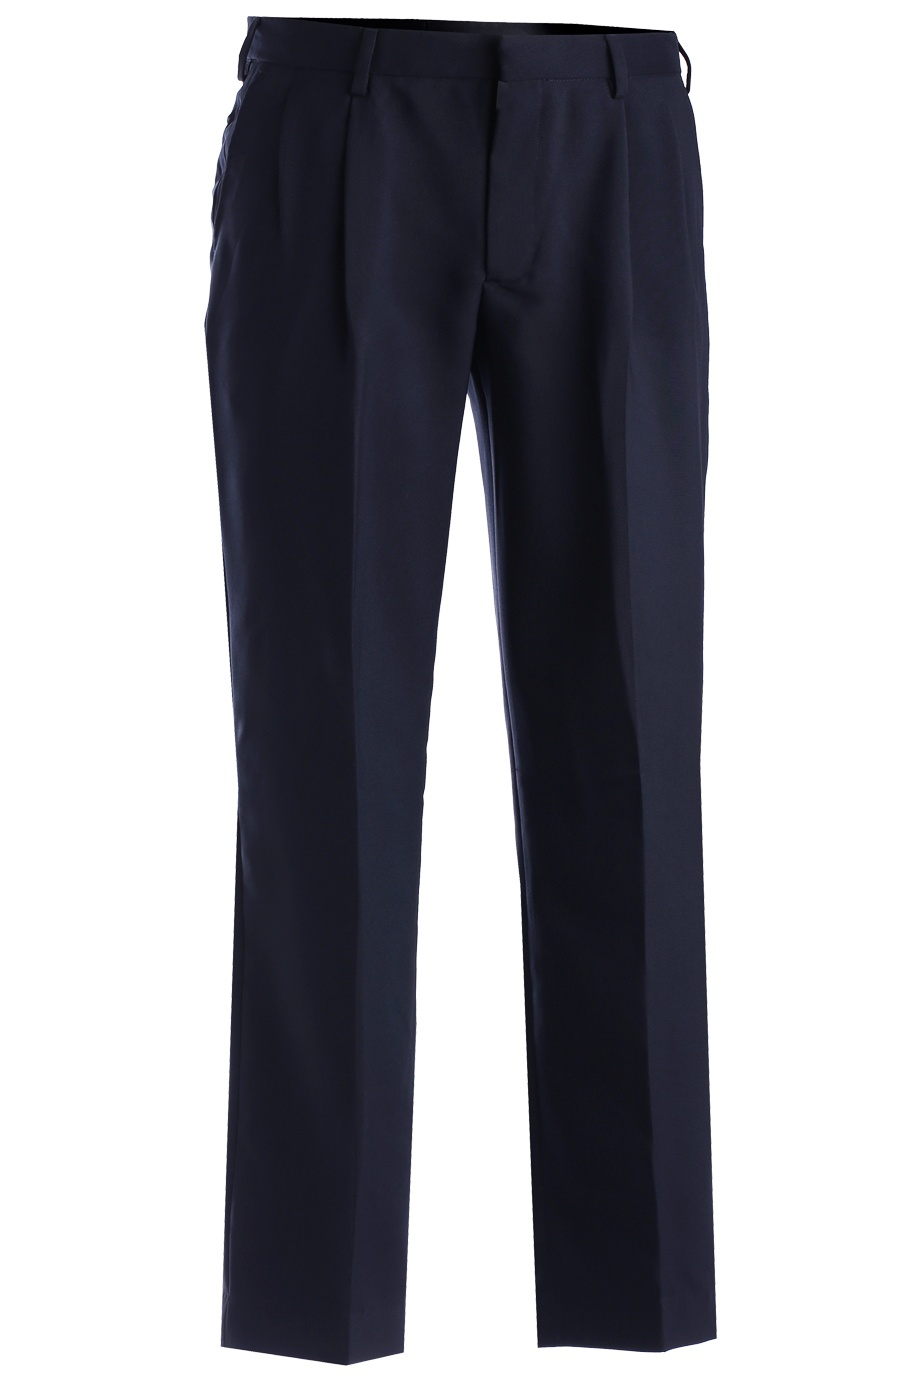 'Edwards 2695 Men's Polyester Pleated Pant'